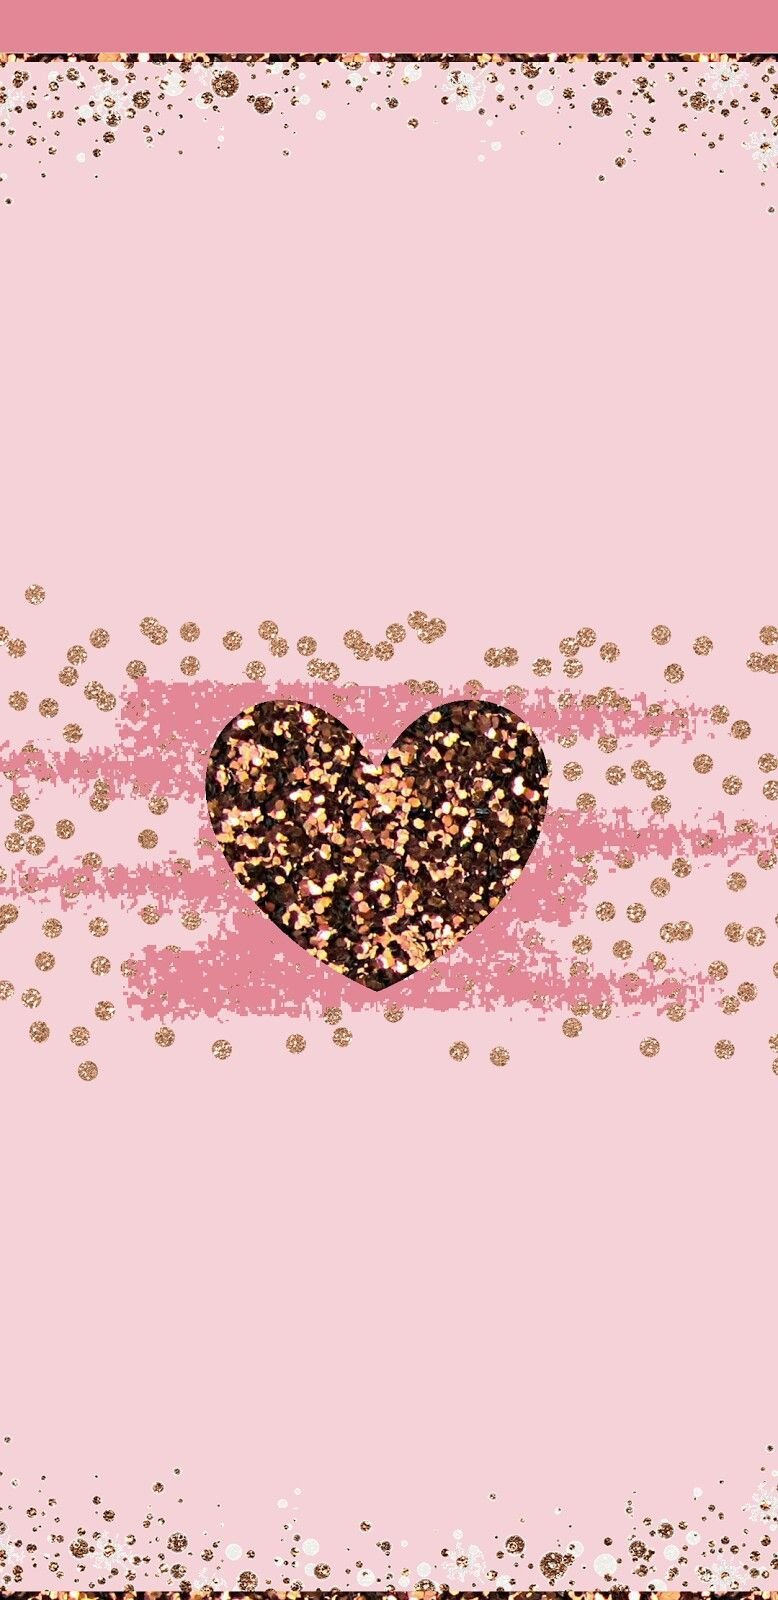 Girly Rose Paillettes Wallpaper Note8love Pink Glitter Wallpaper Glitter Wallpaper Valentines Wallpaper Iphone